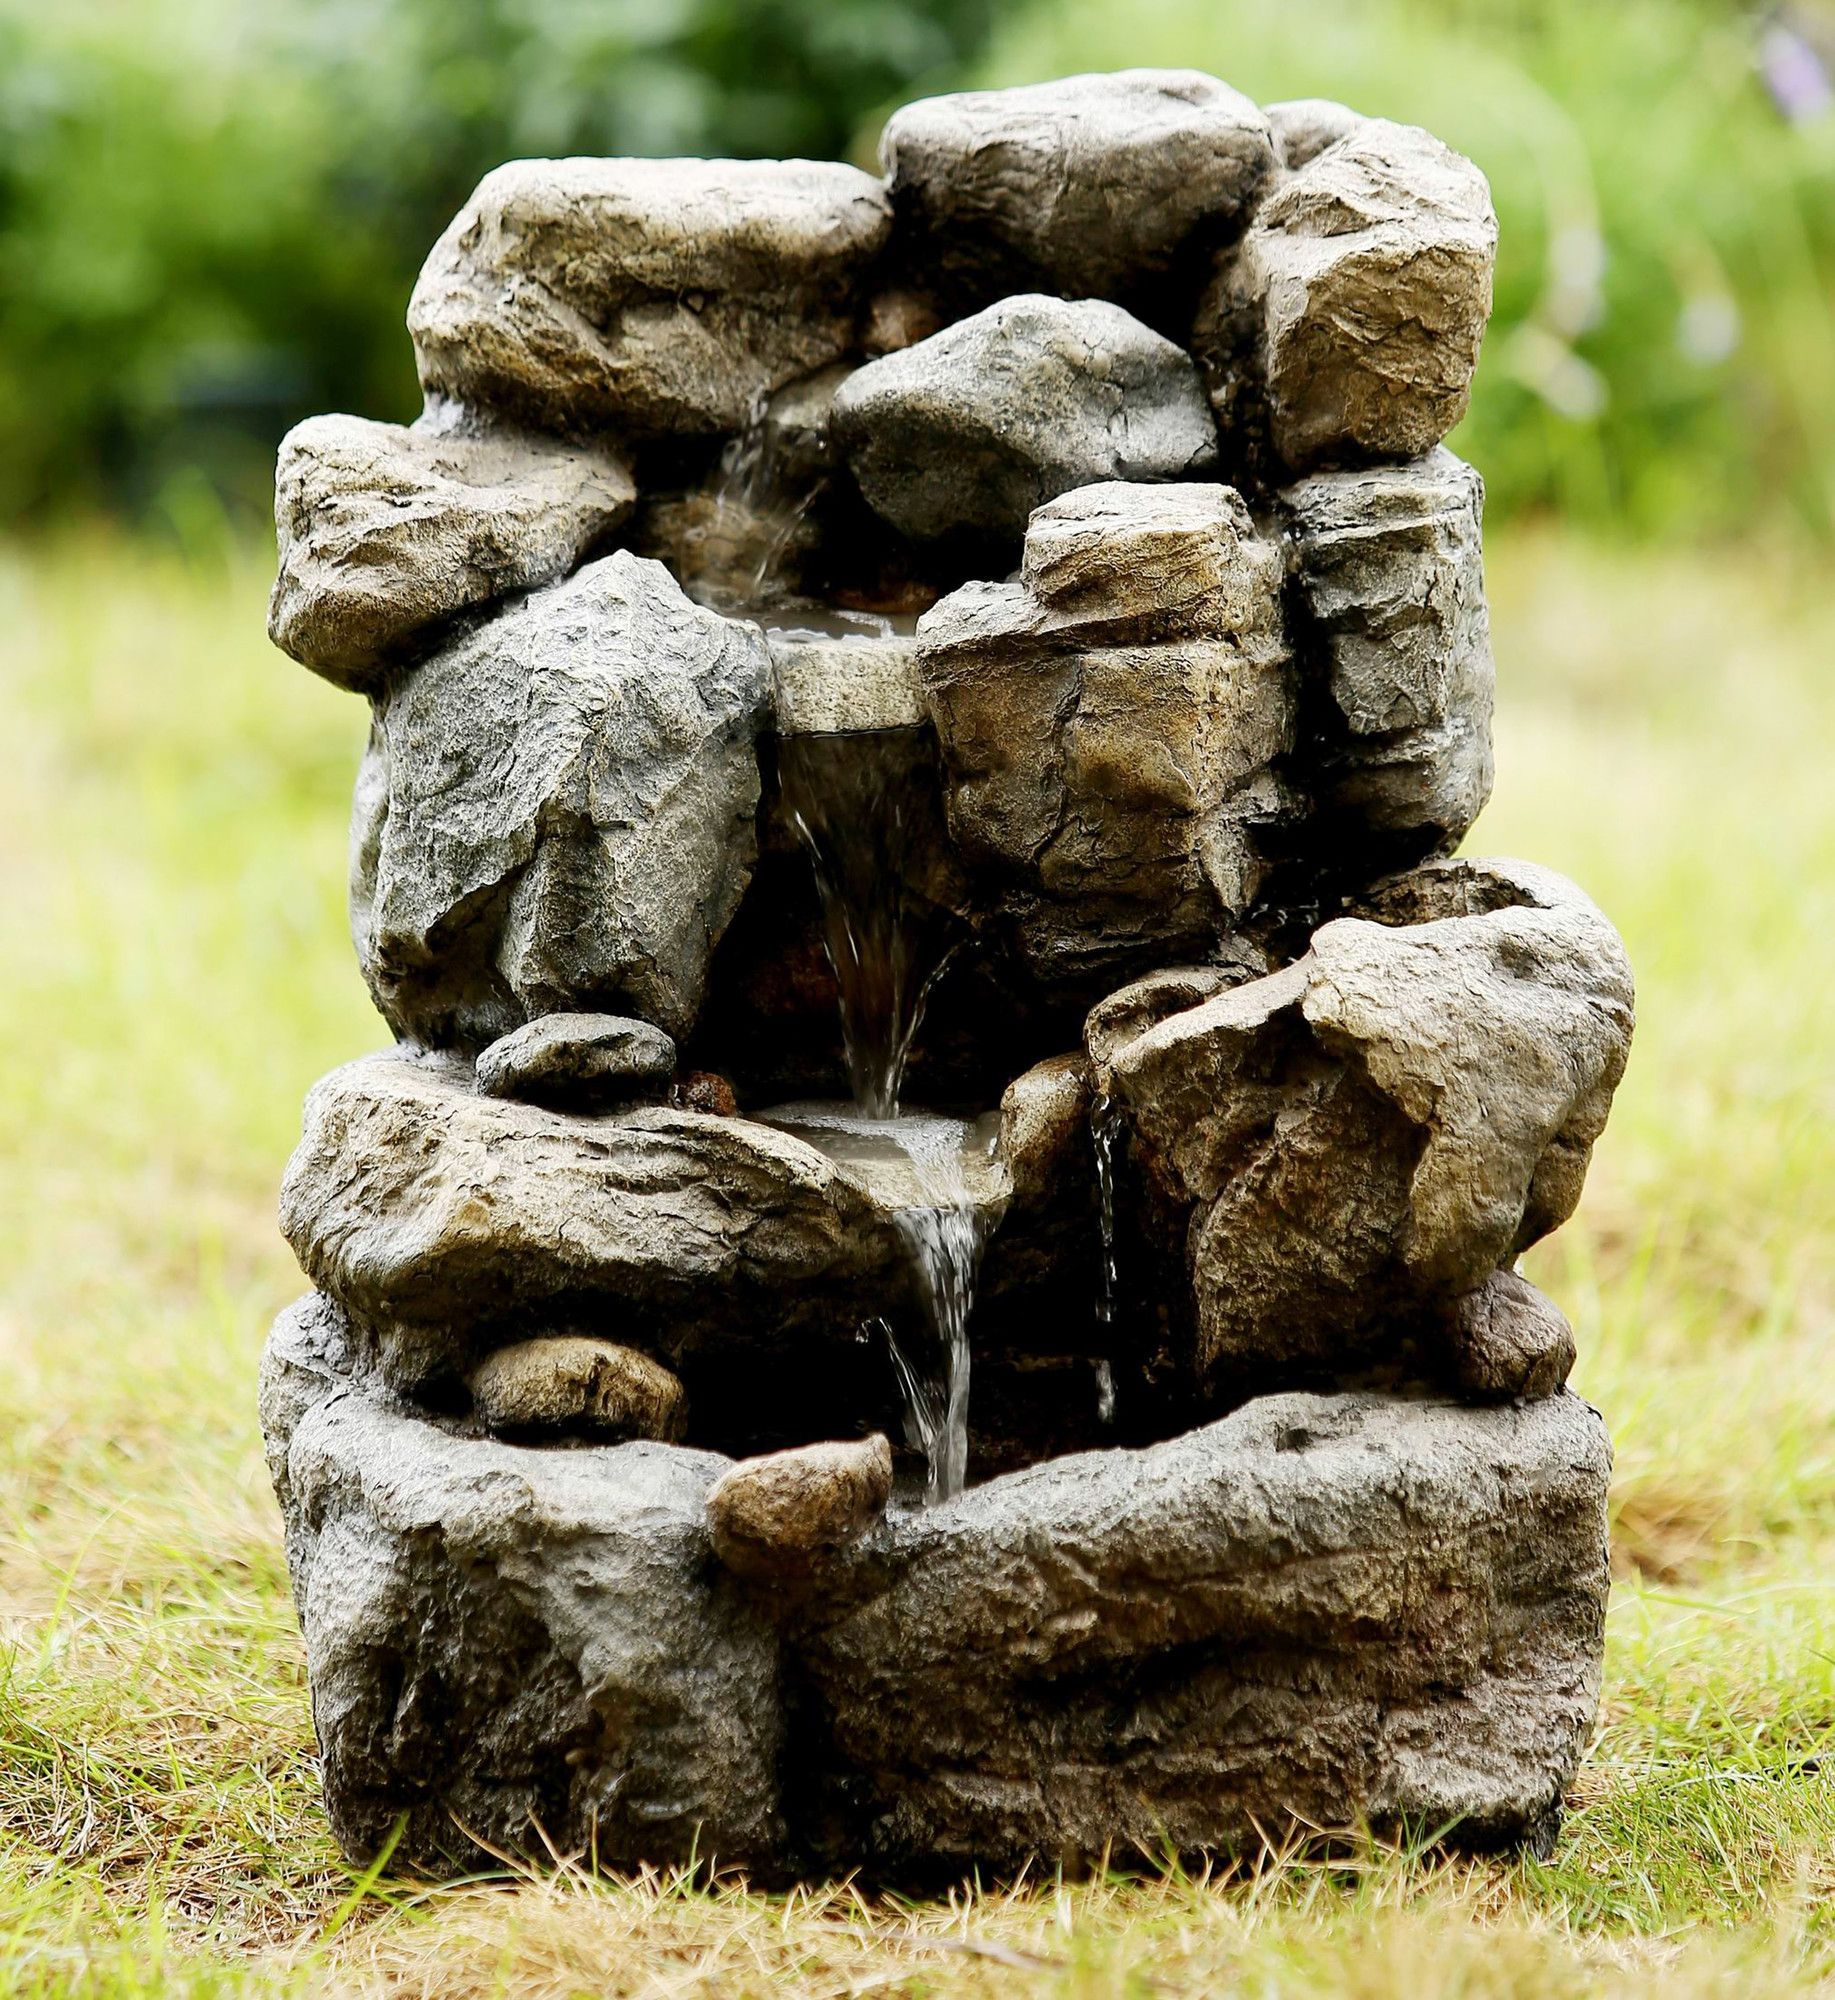 Features:  -Electric power.  -Output: 110V.  Material: -Fiberglass/Resin.  Style: -Traditional.  Fountain Design: -Rock.  Fountain Function: -Floor.  Fountain Location: -Outdoor/Garden.  Pump Included